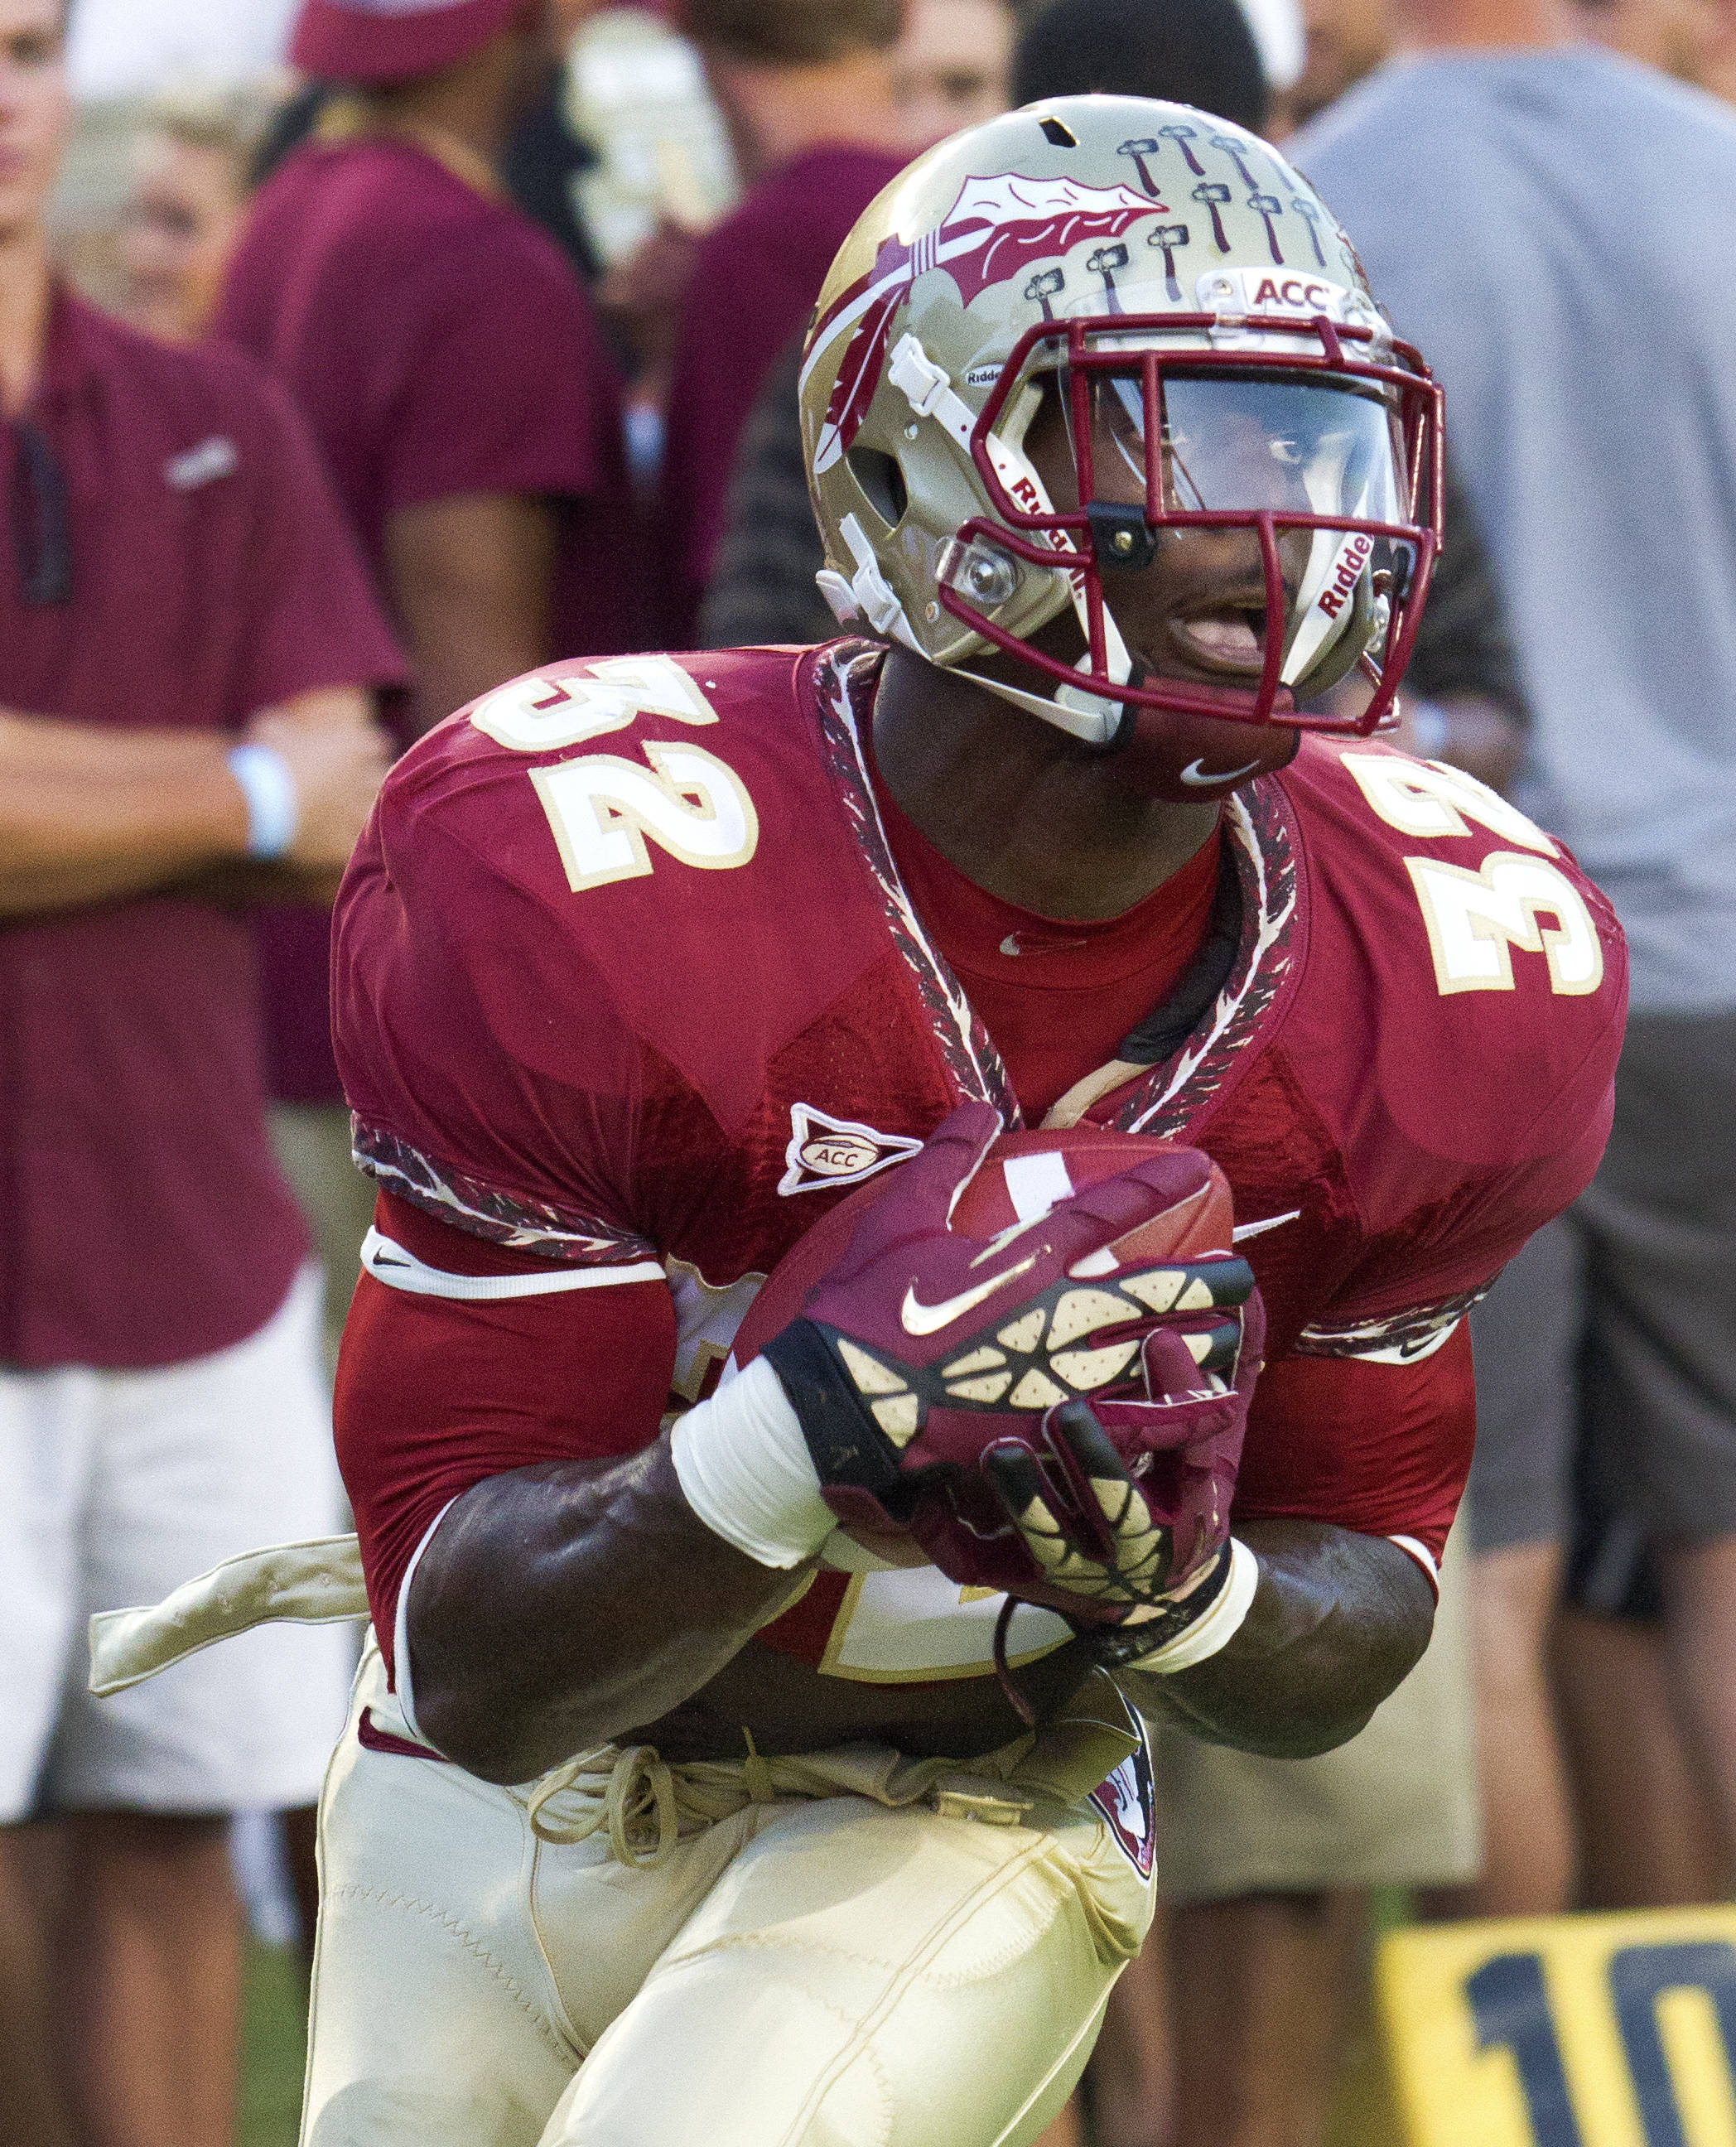 James Wilder Jr. (32), FSU vs Clemson, 9/22/12 (Photo by Steve Musco)